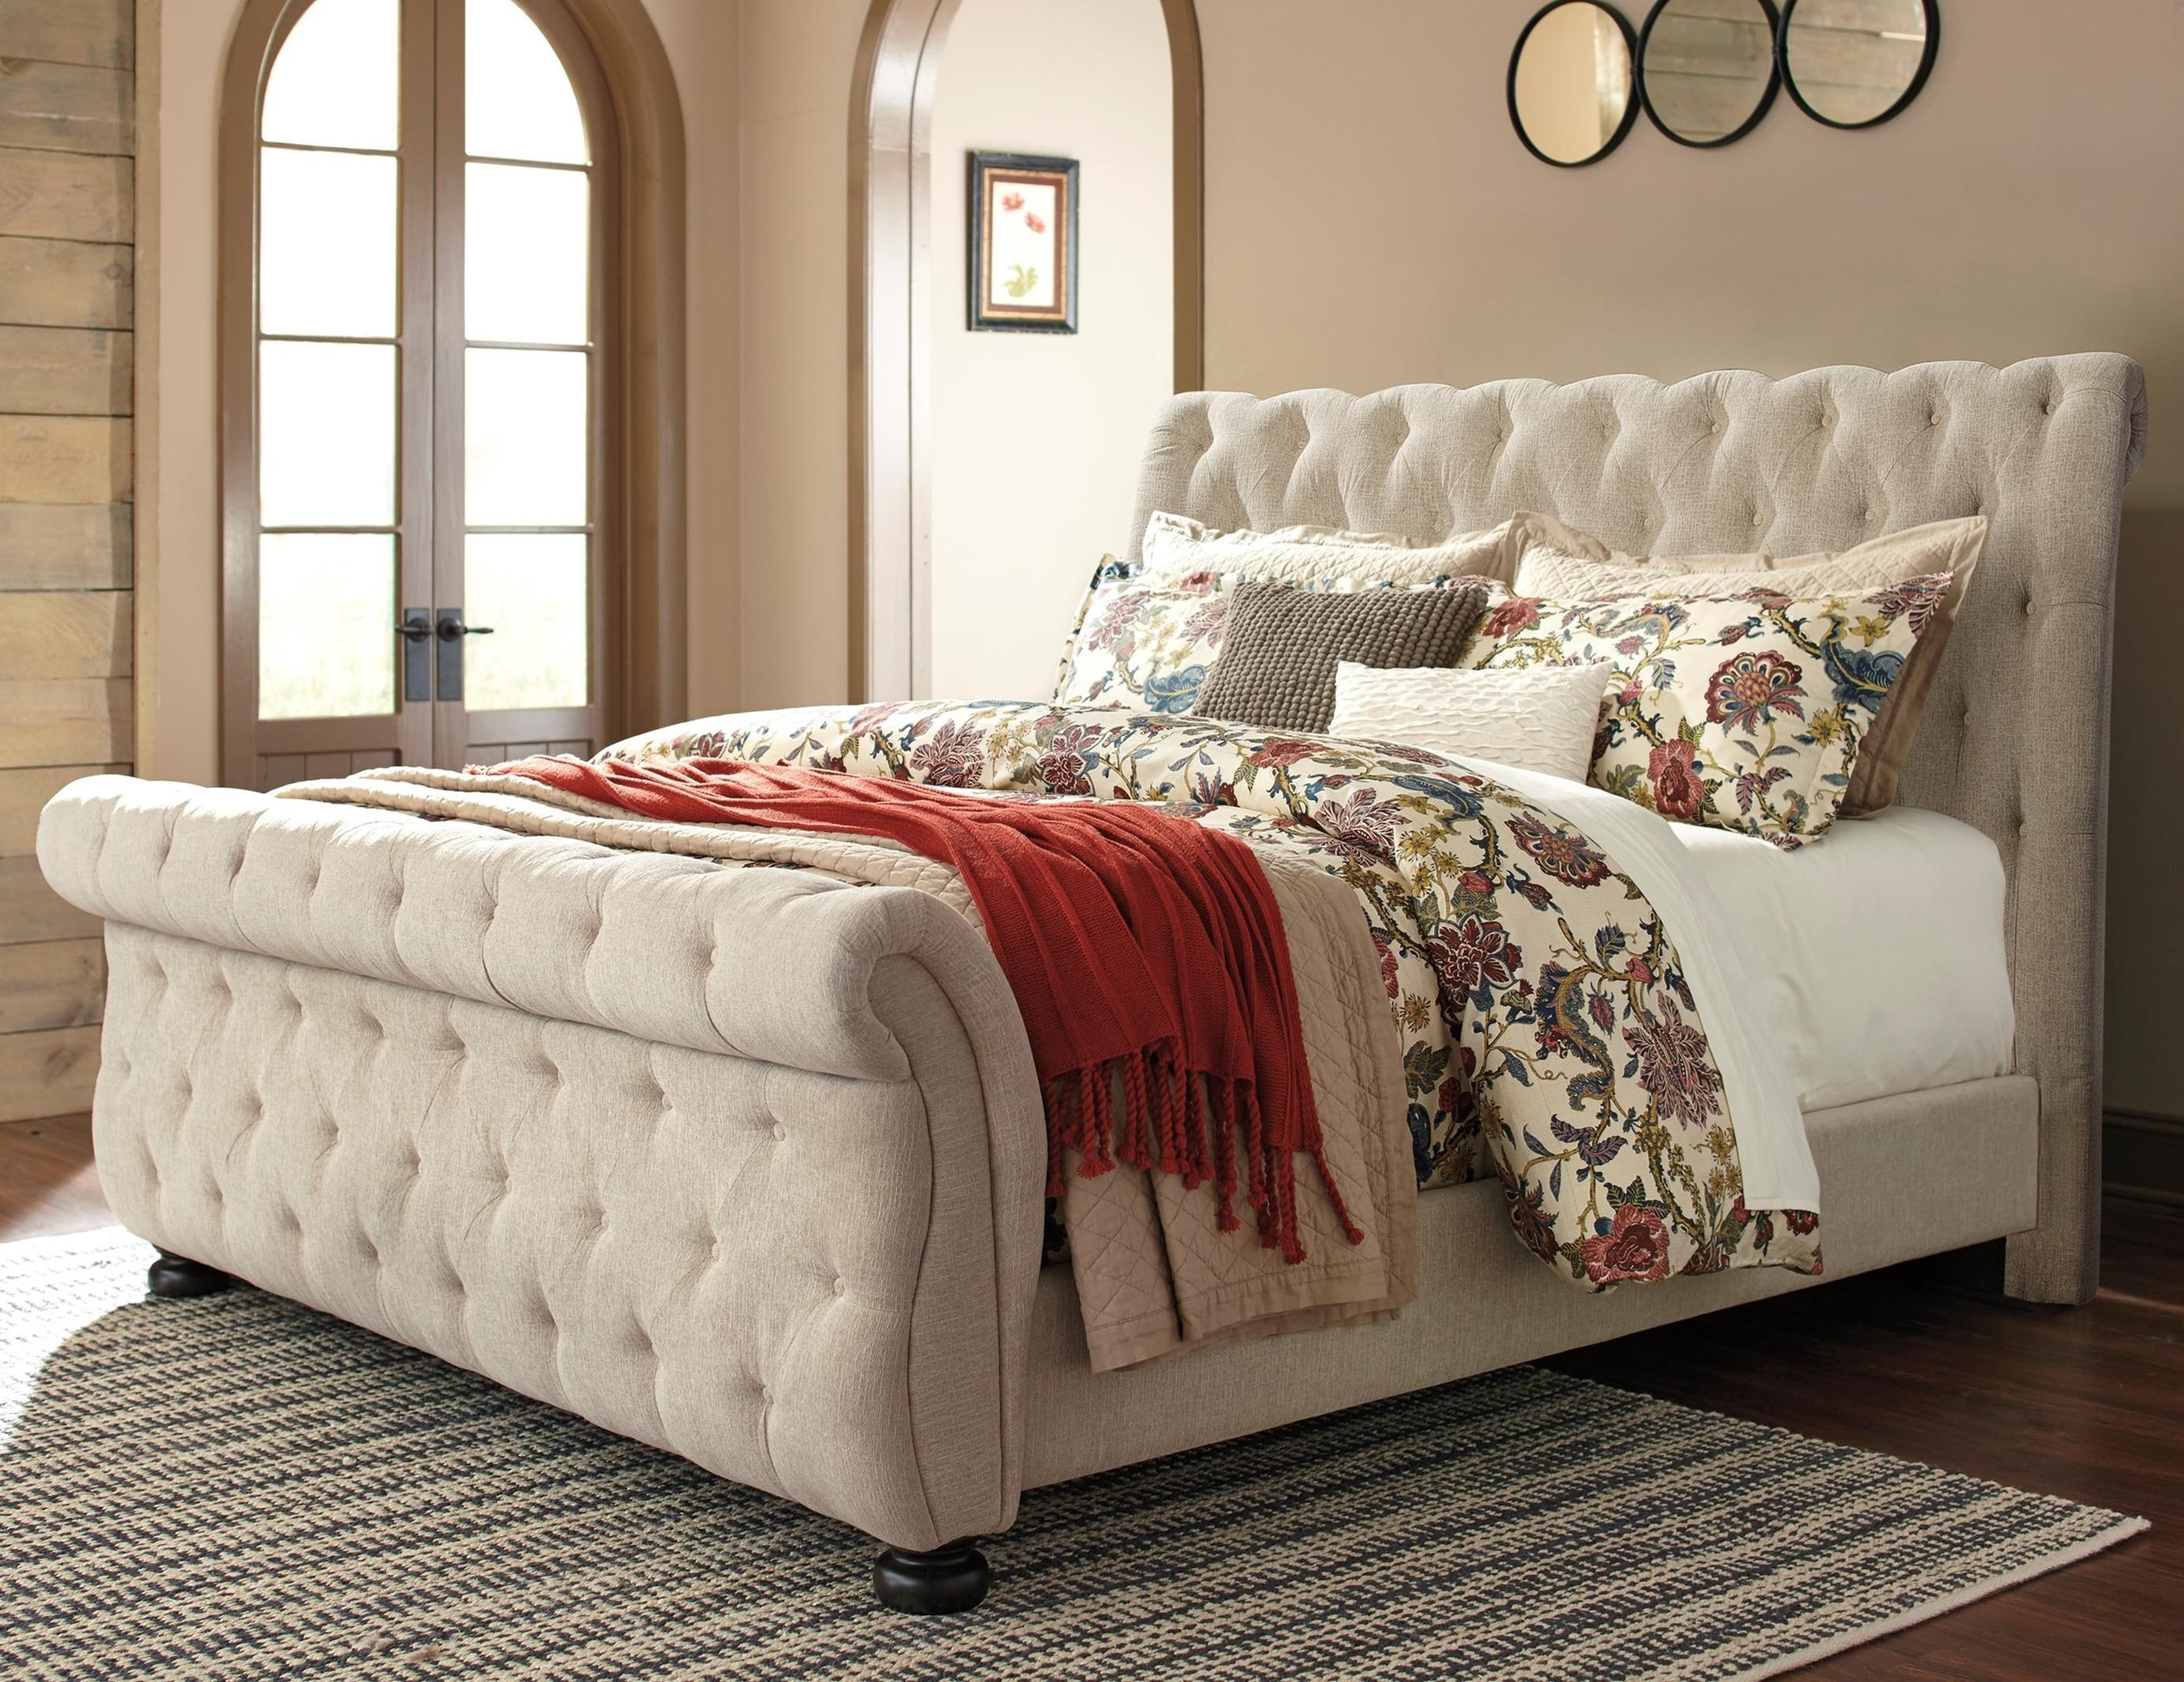 upholstered sleigh bed frame. Fine Sleigh Signature Design By Ashley Willenburg Queen Upholstered Sleigh Bed With  Tufting For Frame F